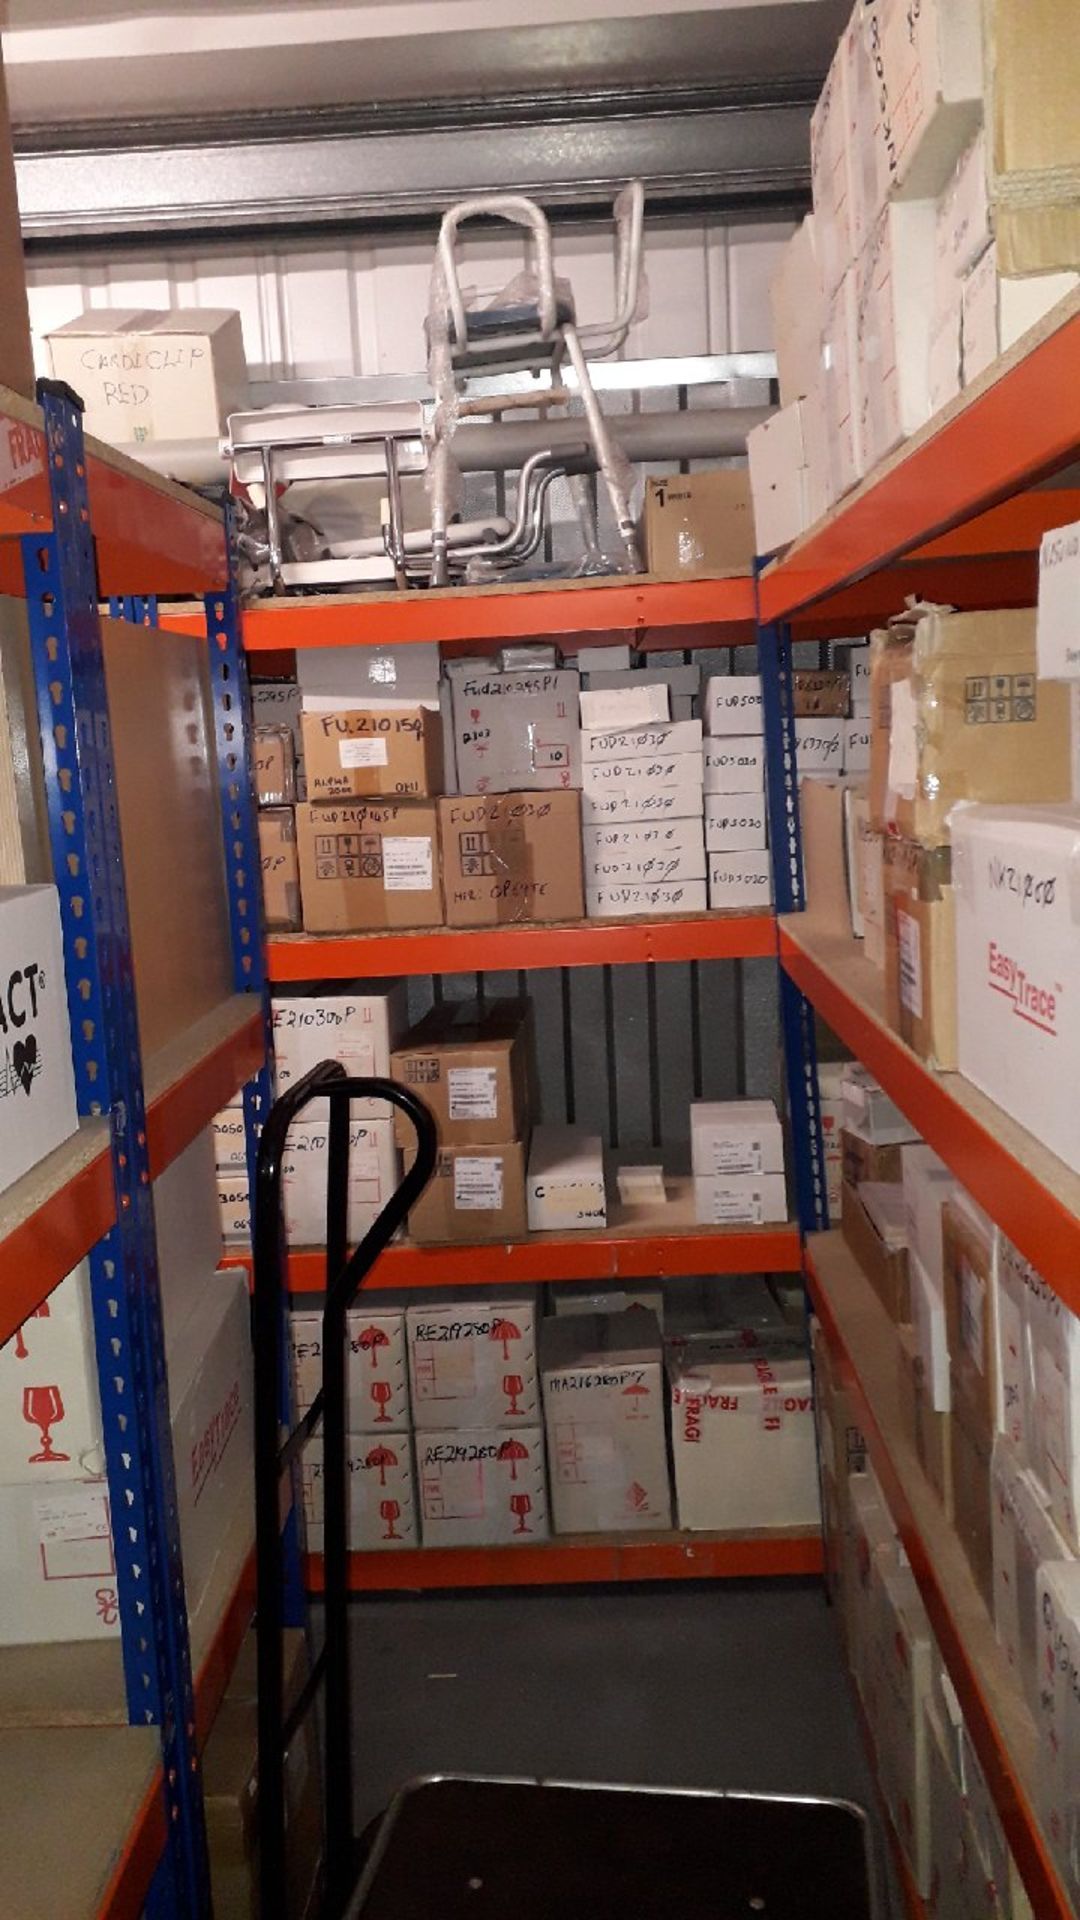 Stock of medical consumables and equipment to incl - Image 2 of 23